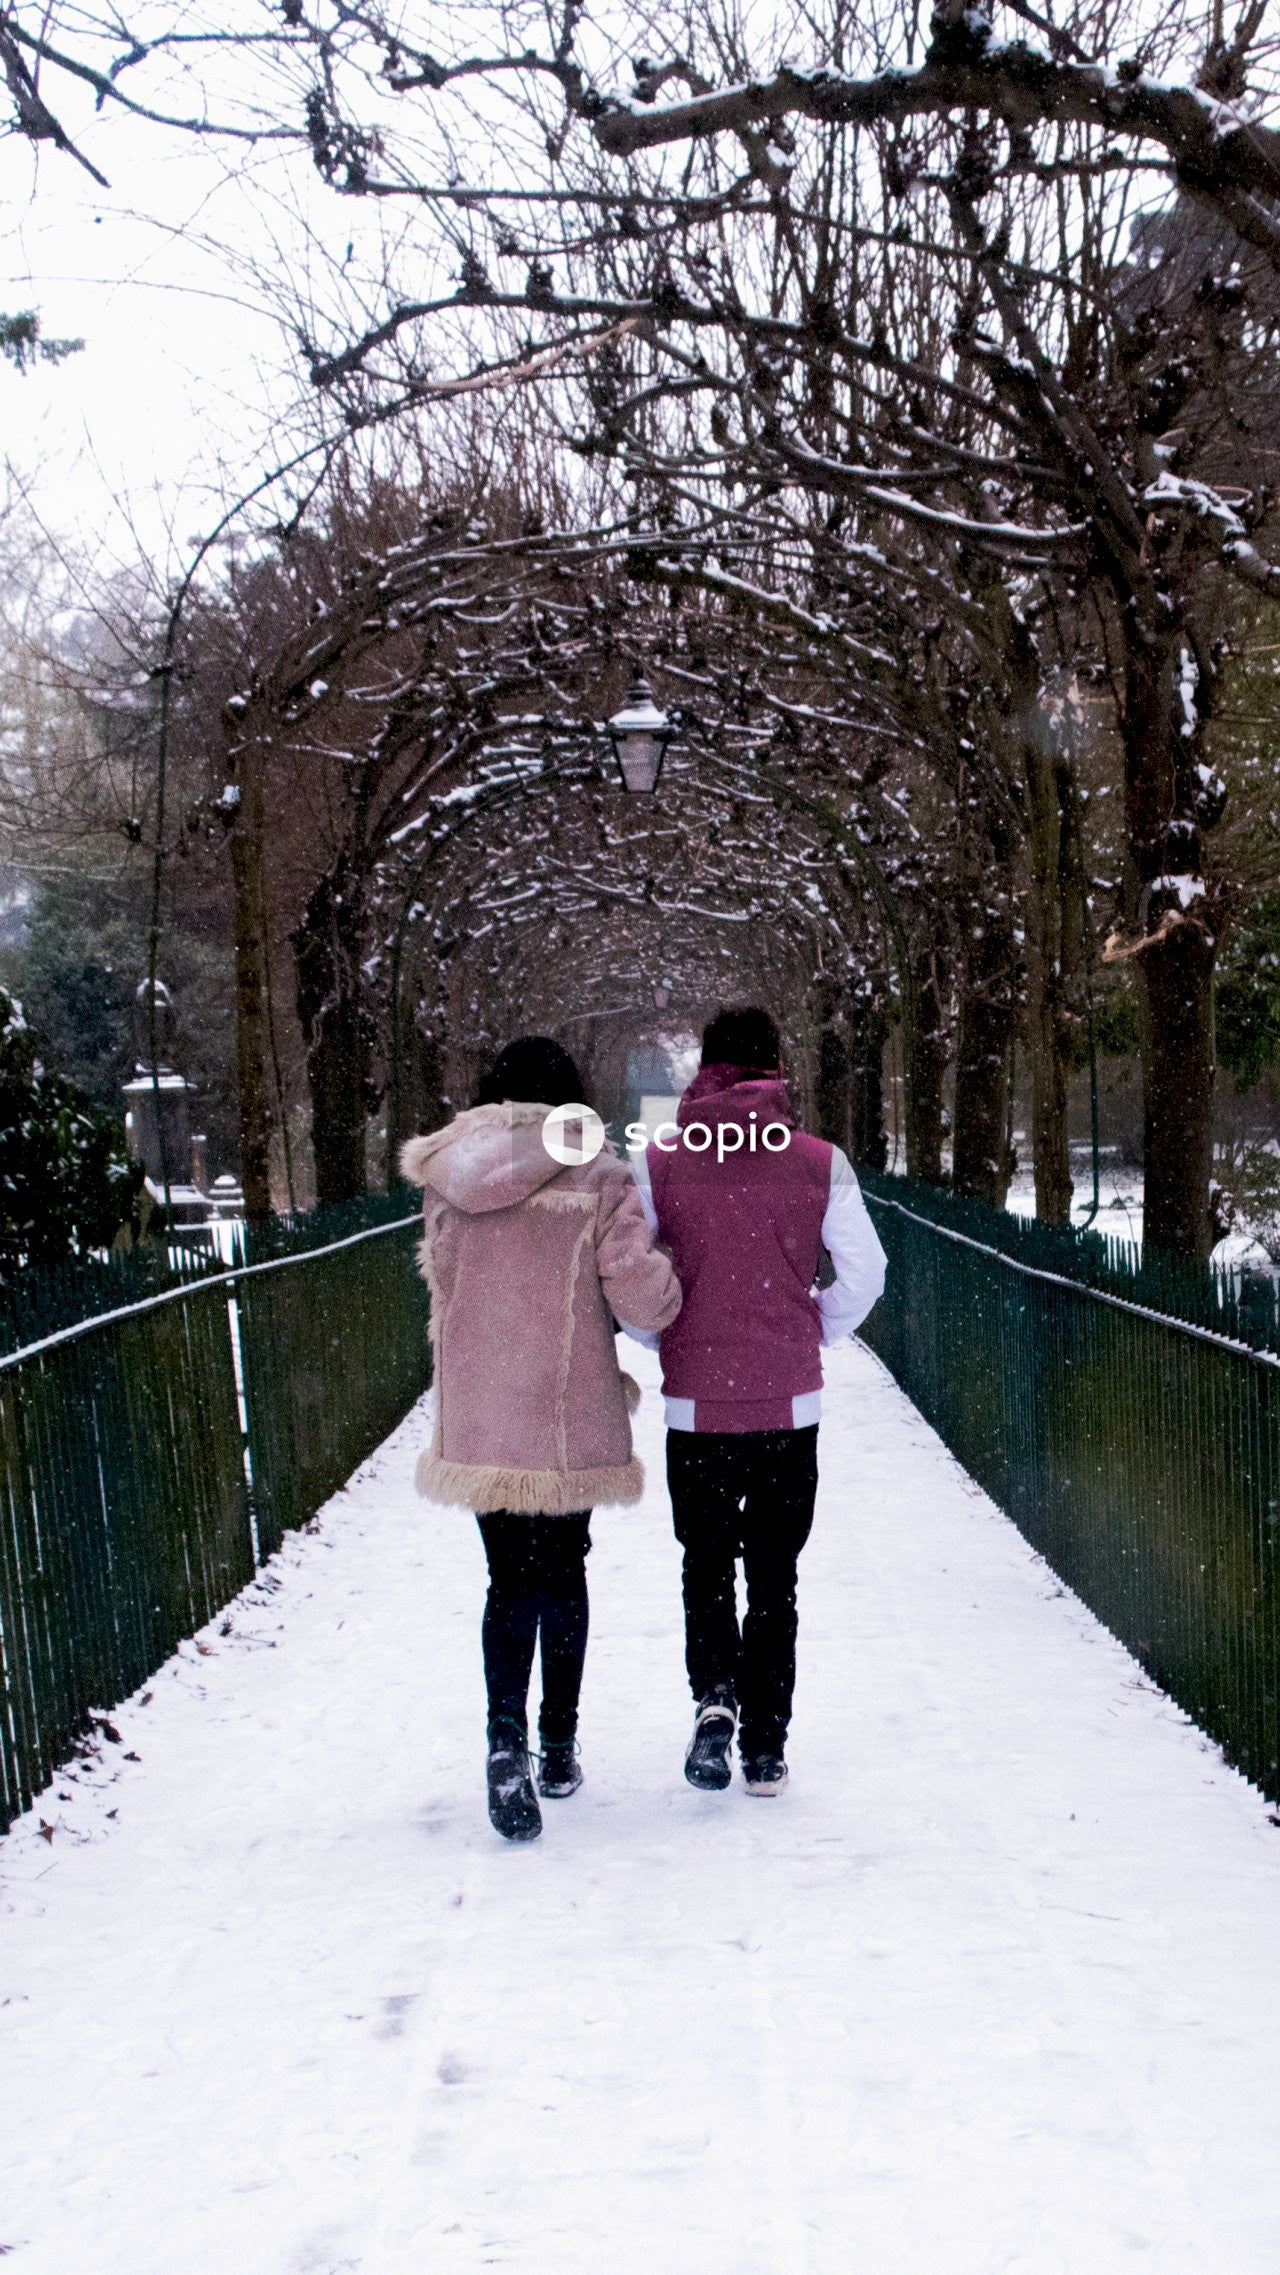 Woman in pink coat walking on snow covered pathway